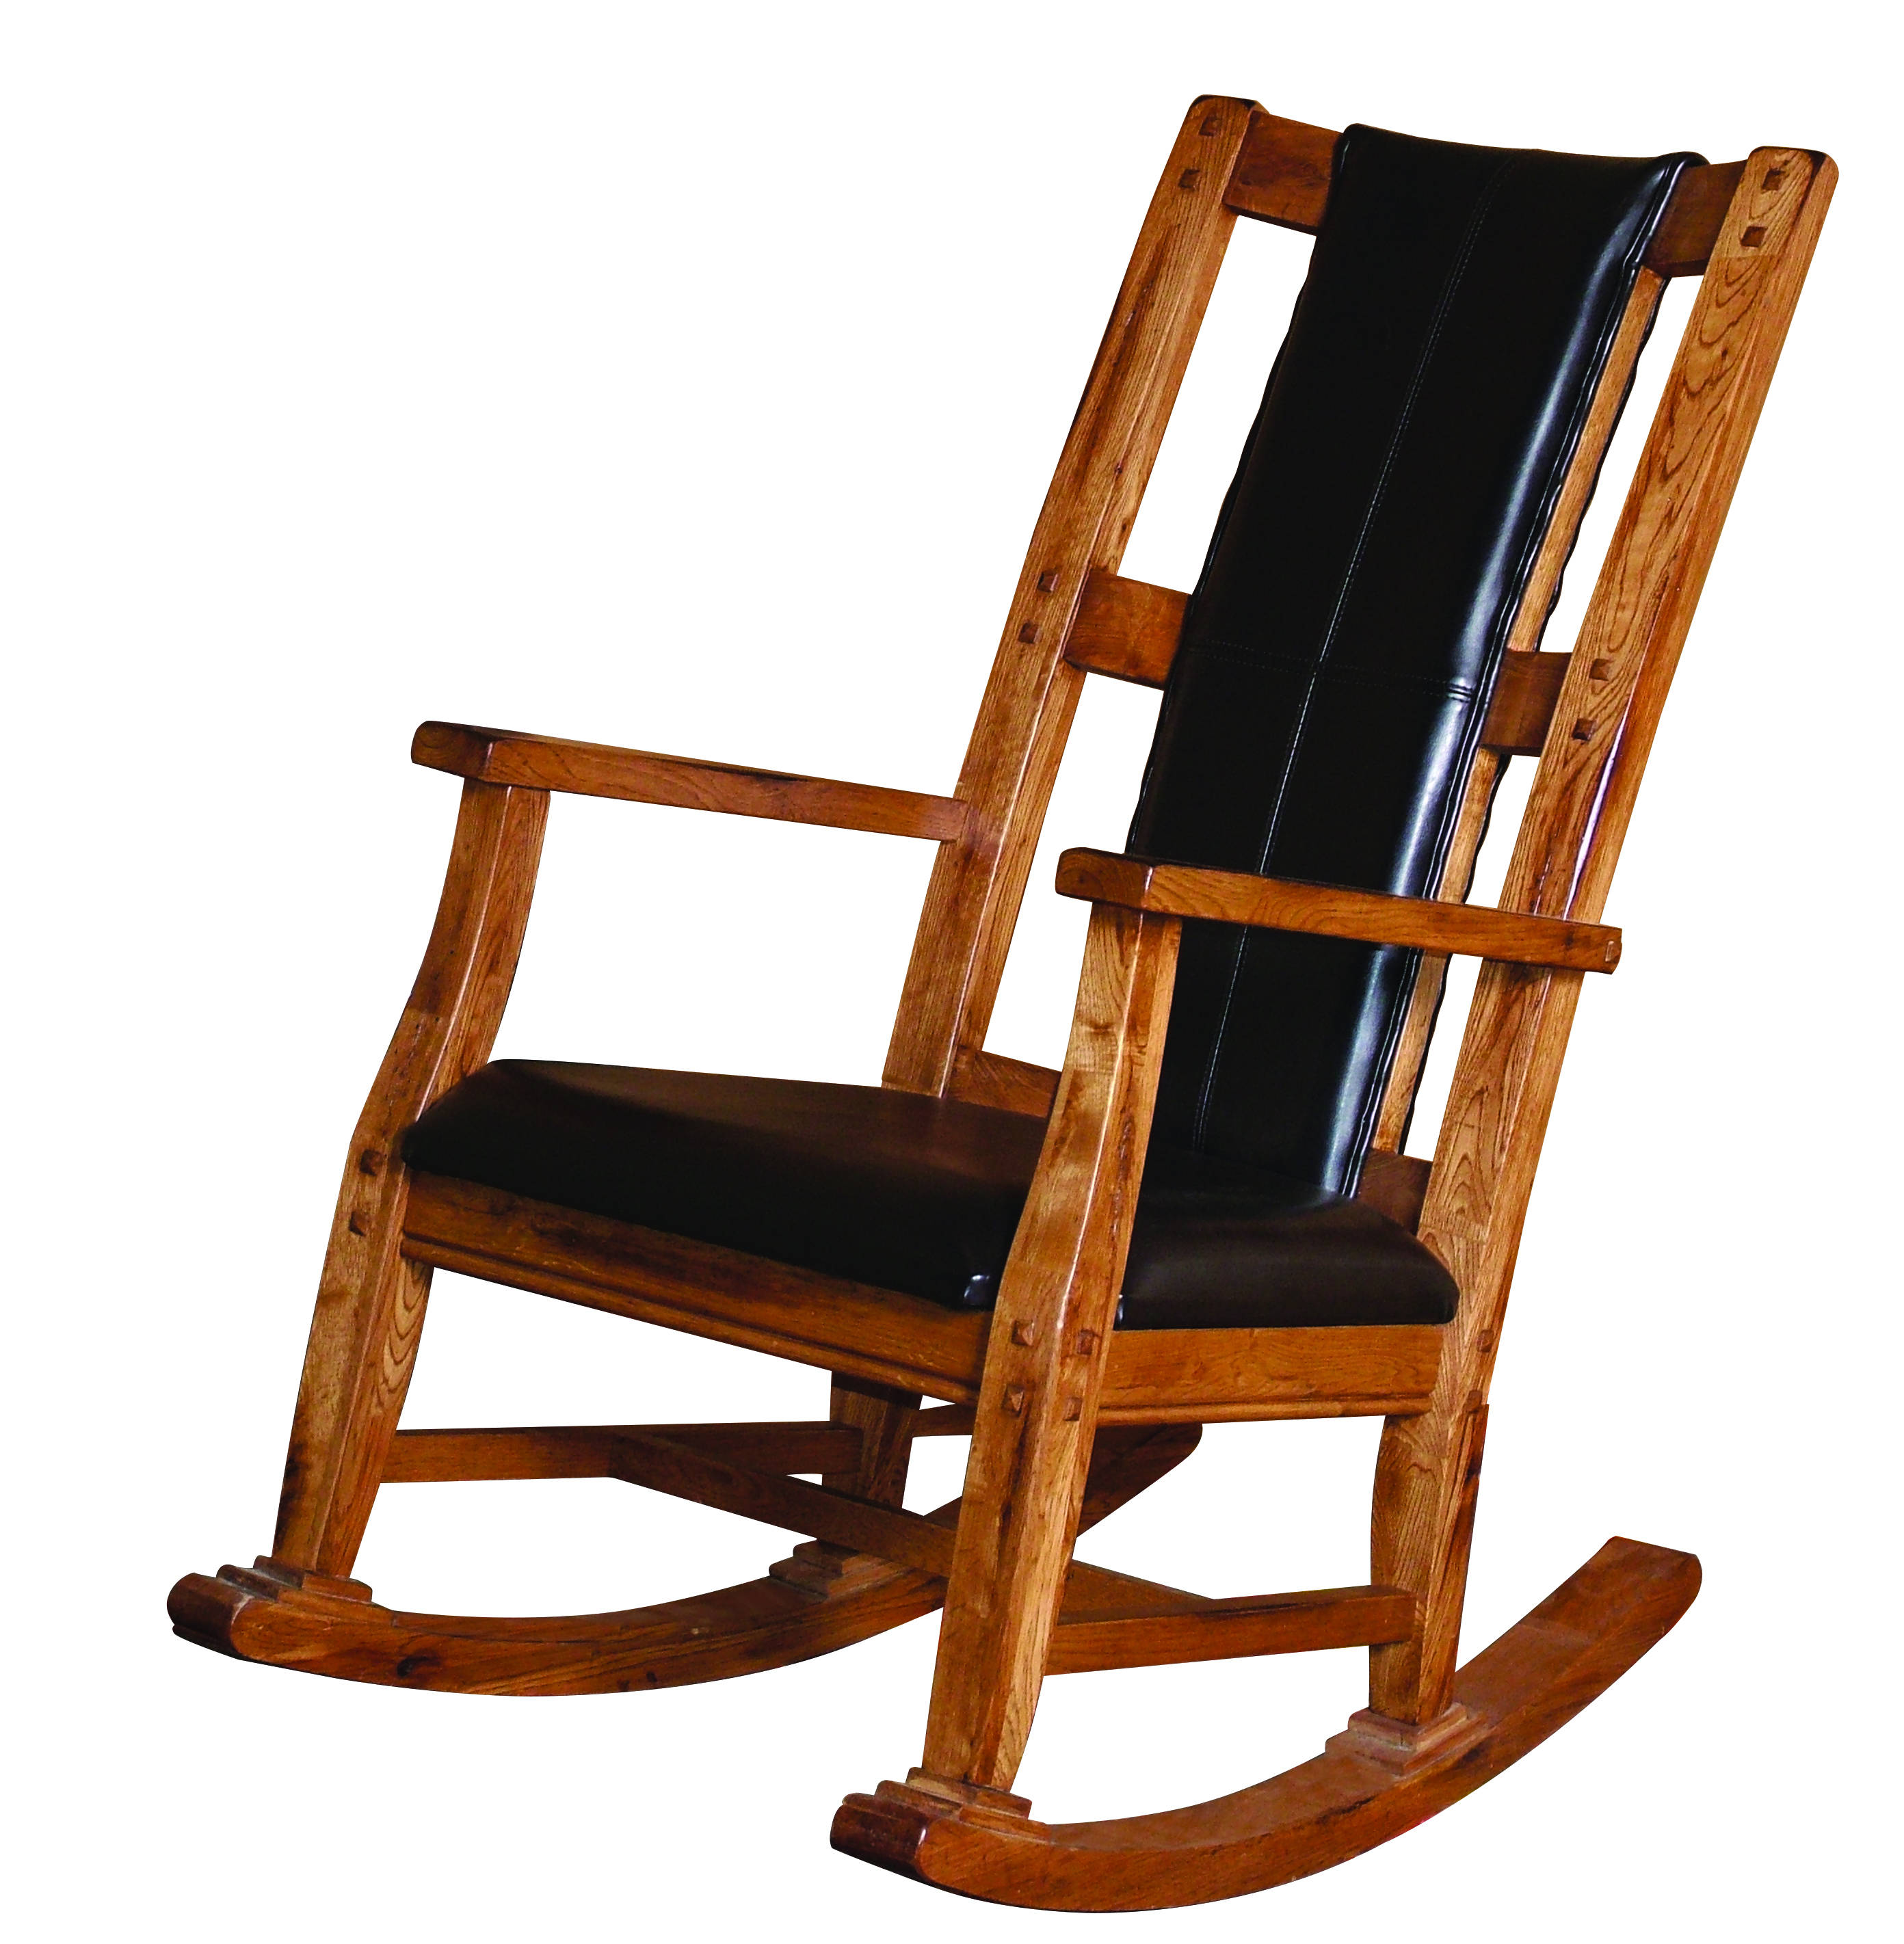 Sunny Designs Sedona Rustic Oak Wood Rocker The Classy Home